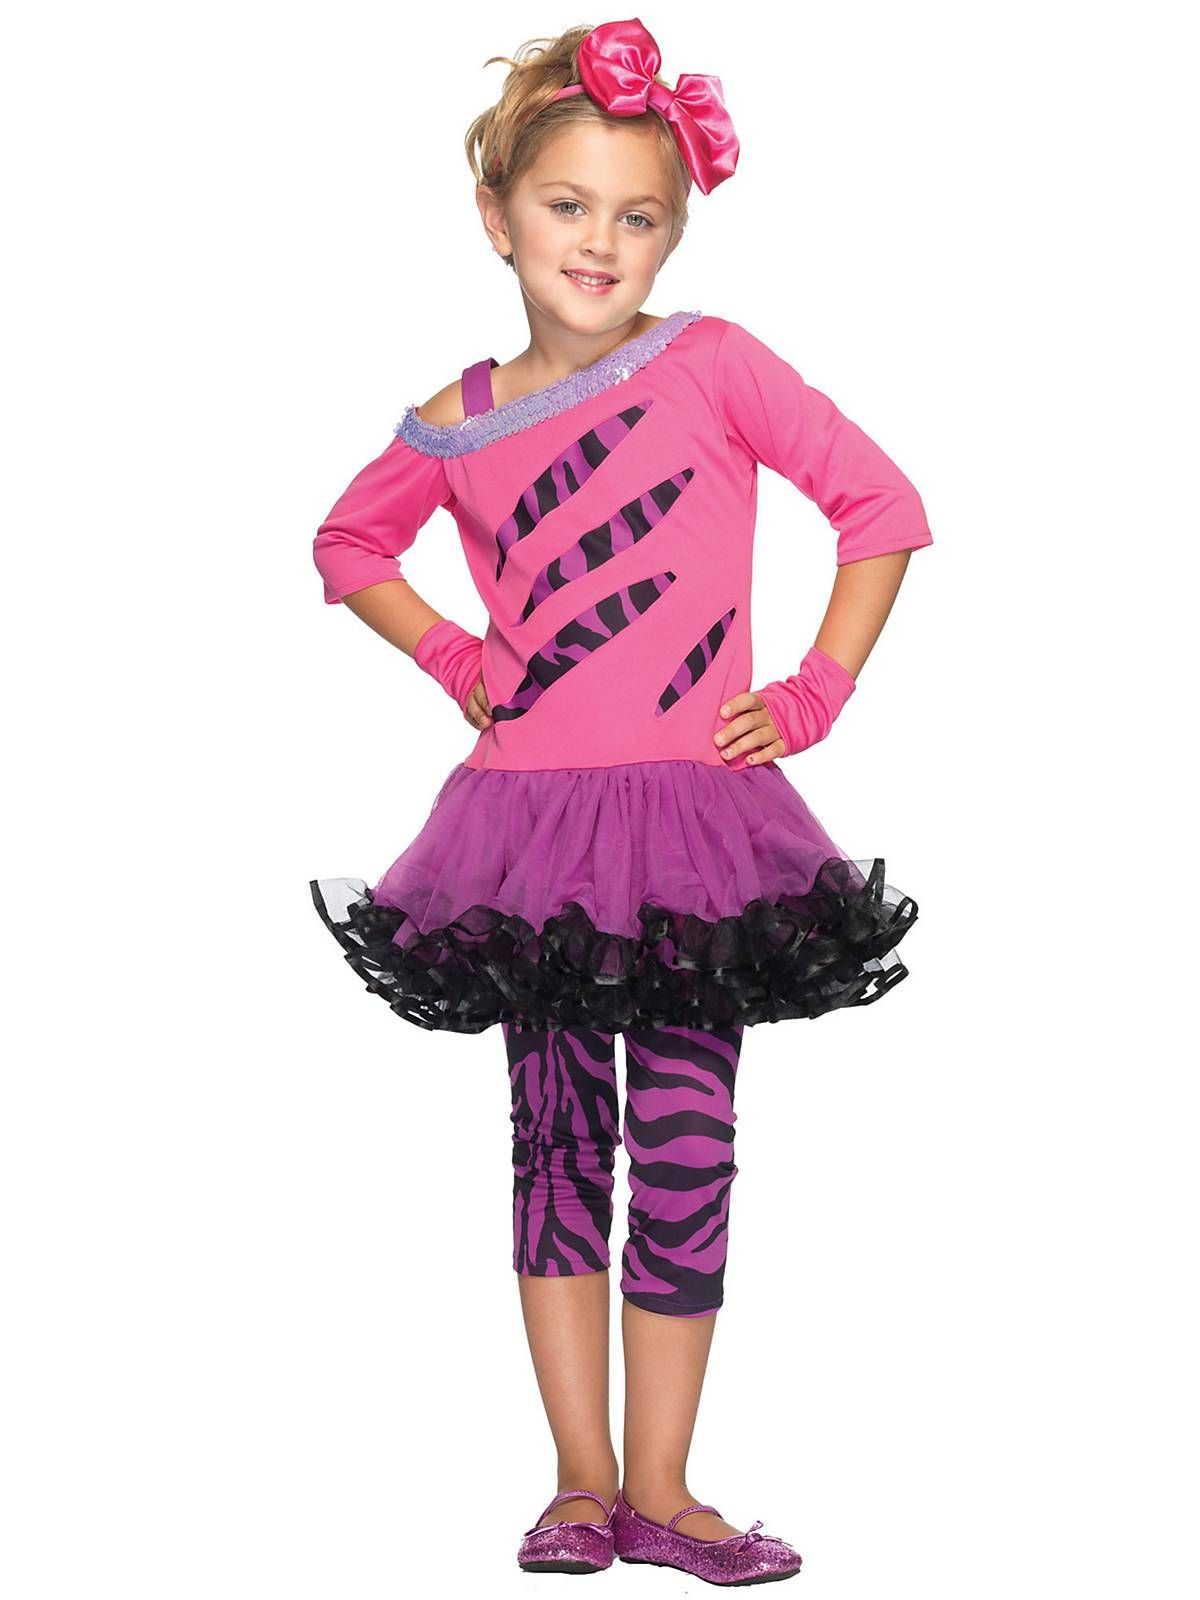 Girls Rockstar Child Costume Costumes Girls Clearance